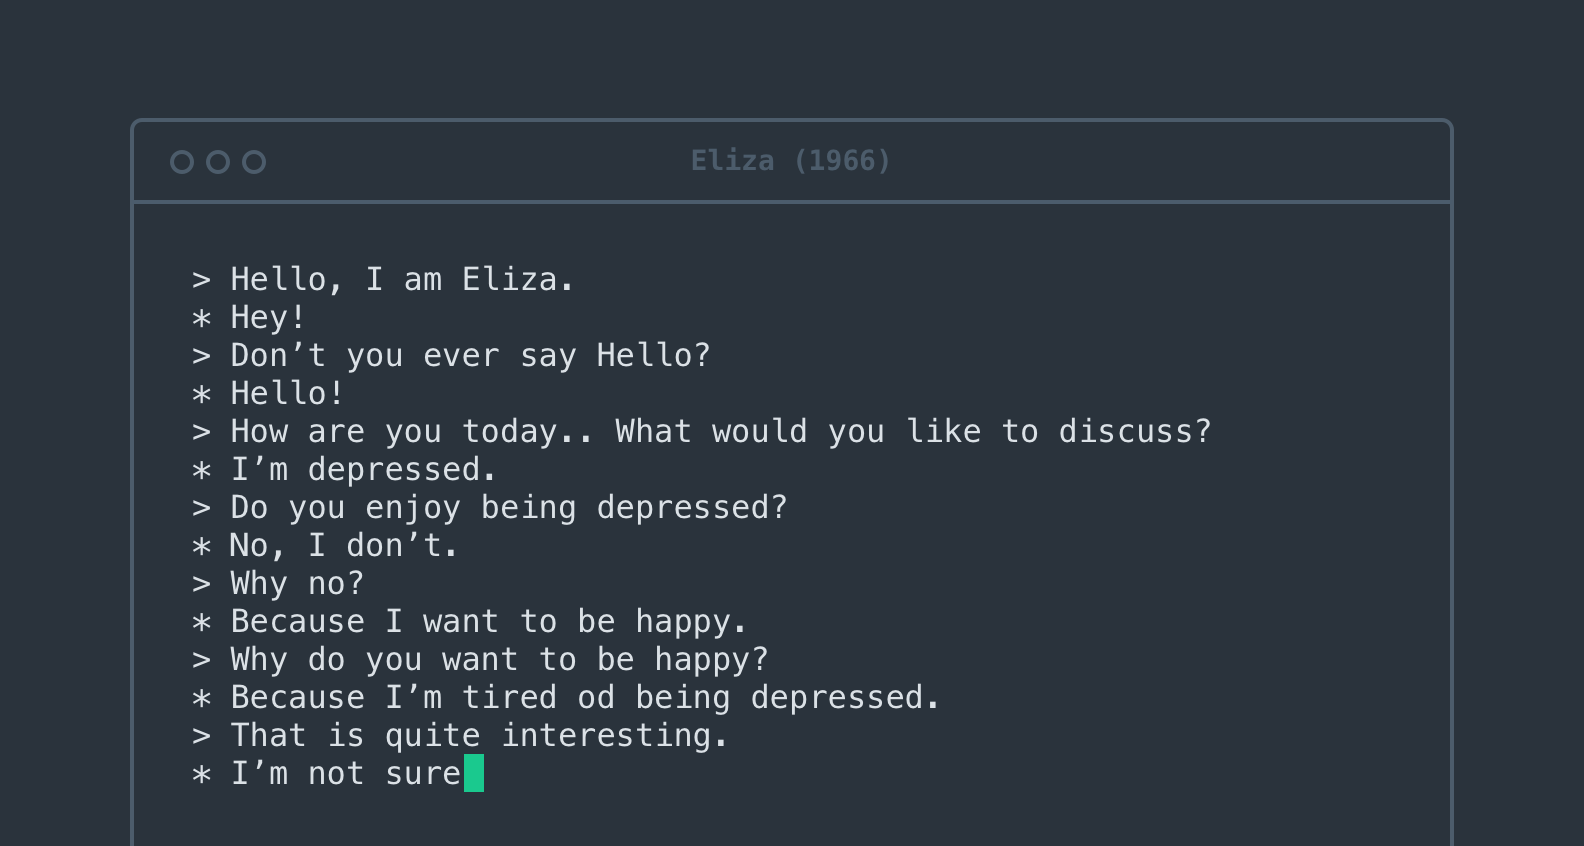 Example conversation with Eliza